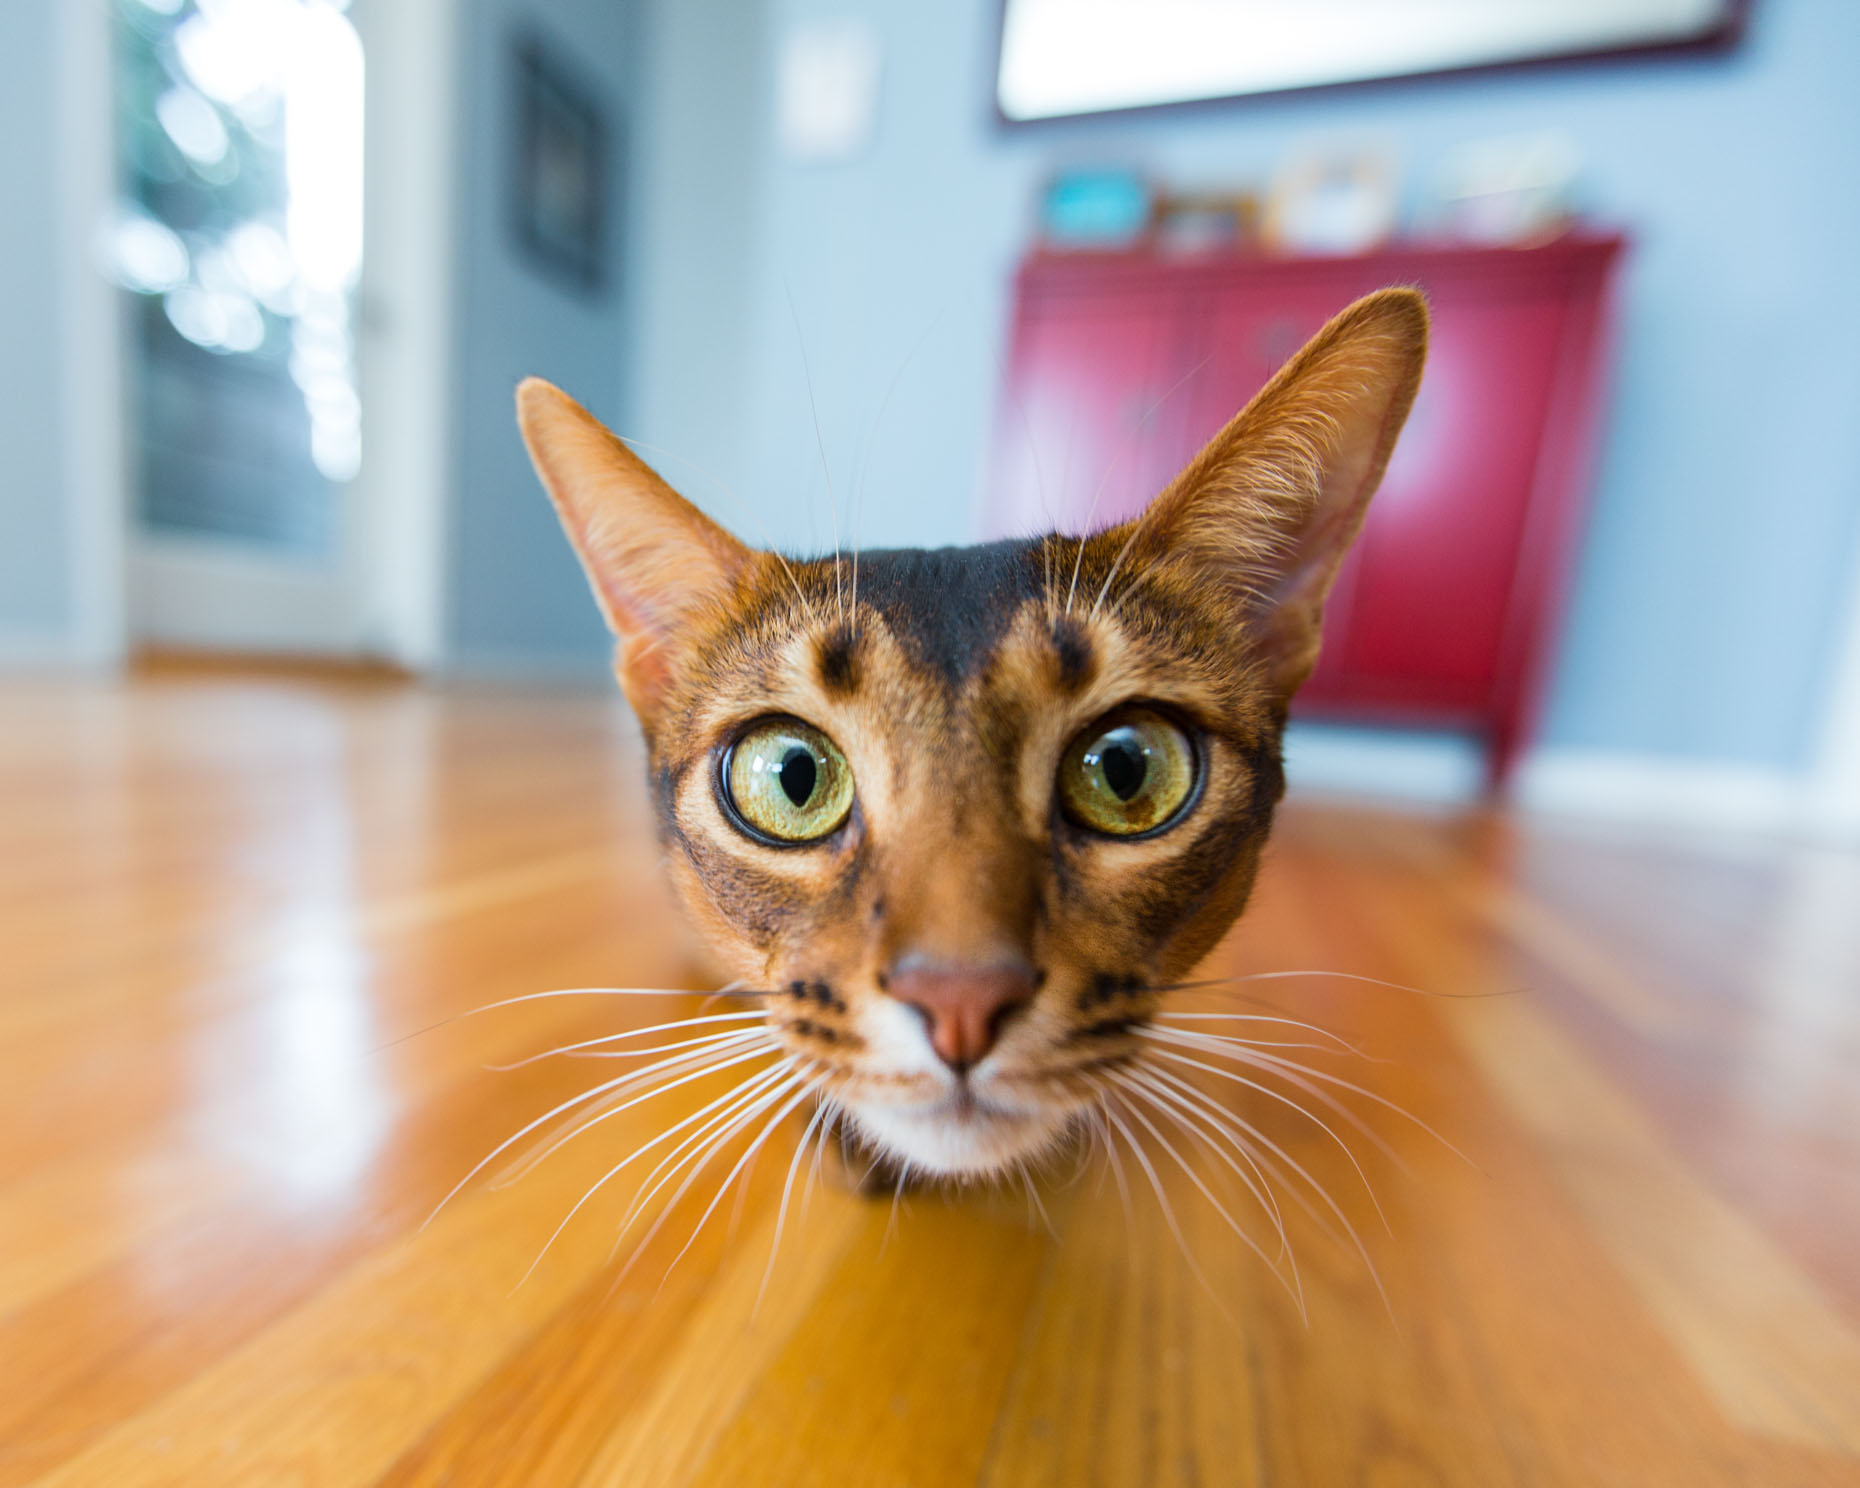 Curious by nature, creatives and strategists could learn from the humble house cat.